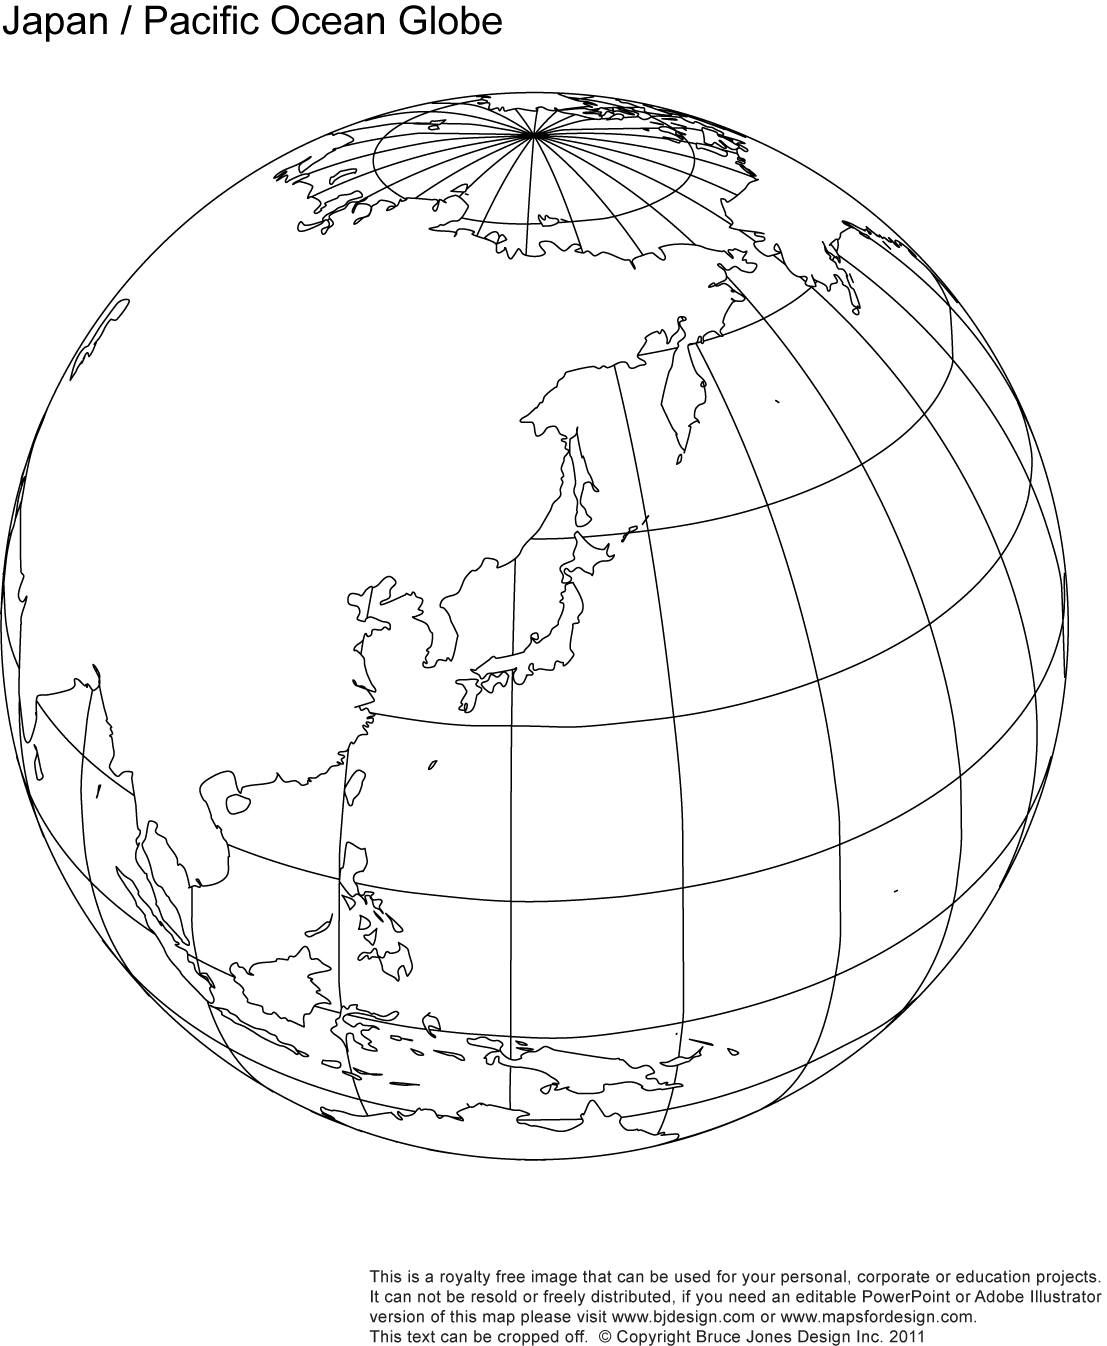 Japan, Pacific Ocean Globe map, blank, printable, outline, royalty free, jpg map